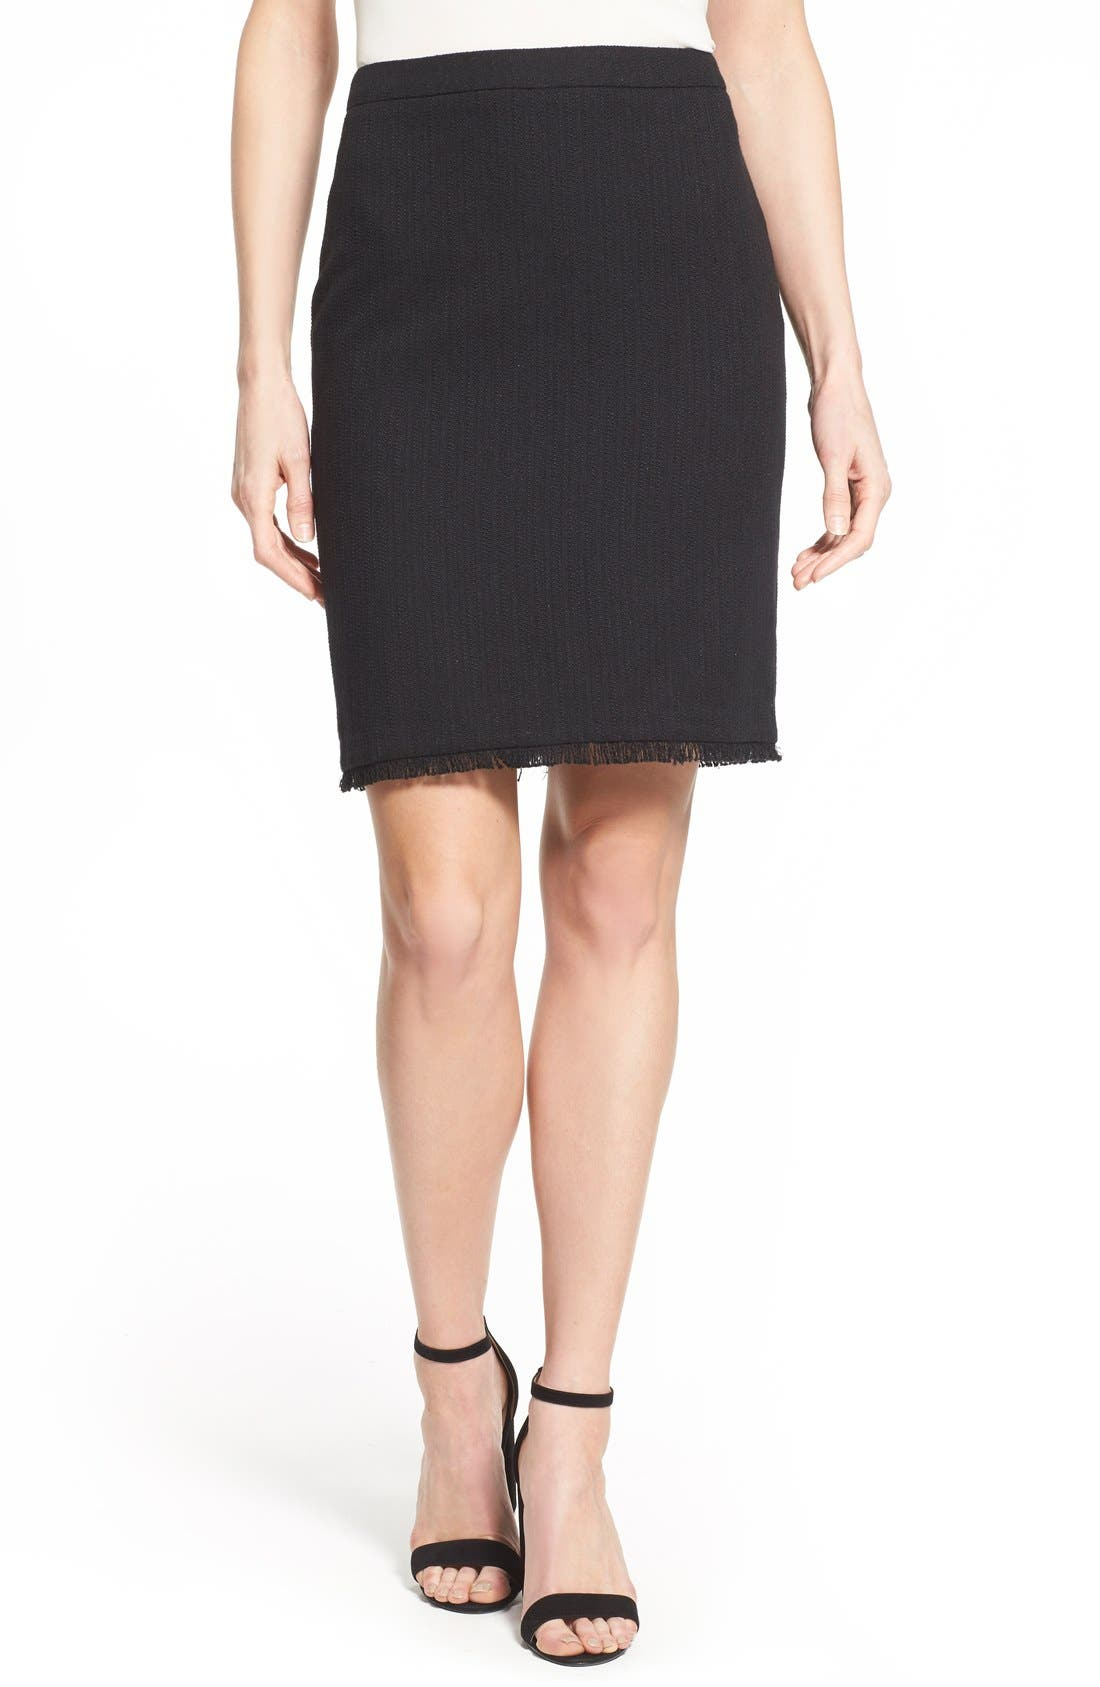 Alternate Image 1 Selected - Halogen® Novelty Tweed Pencil Skirt (Regular & Petite)